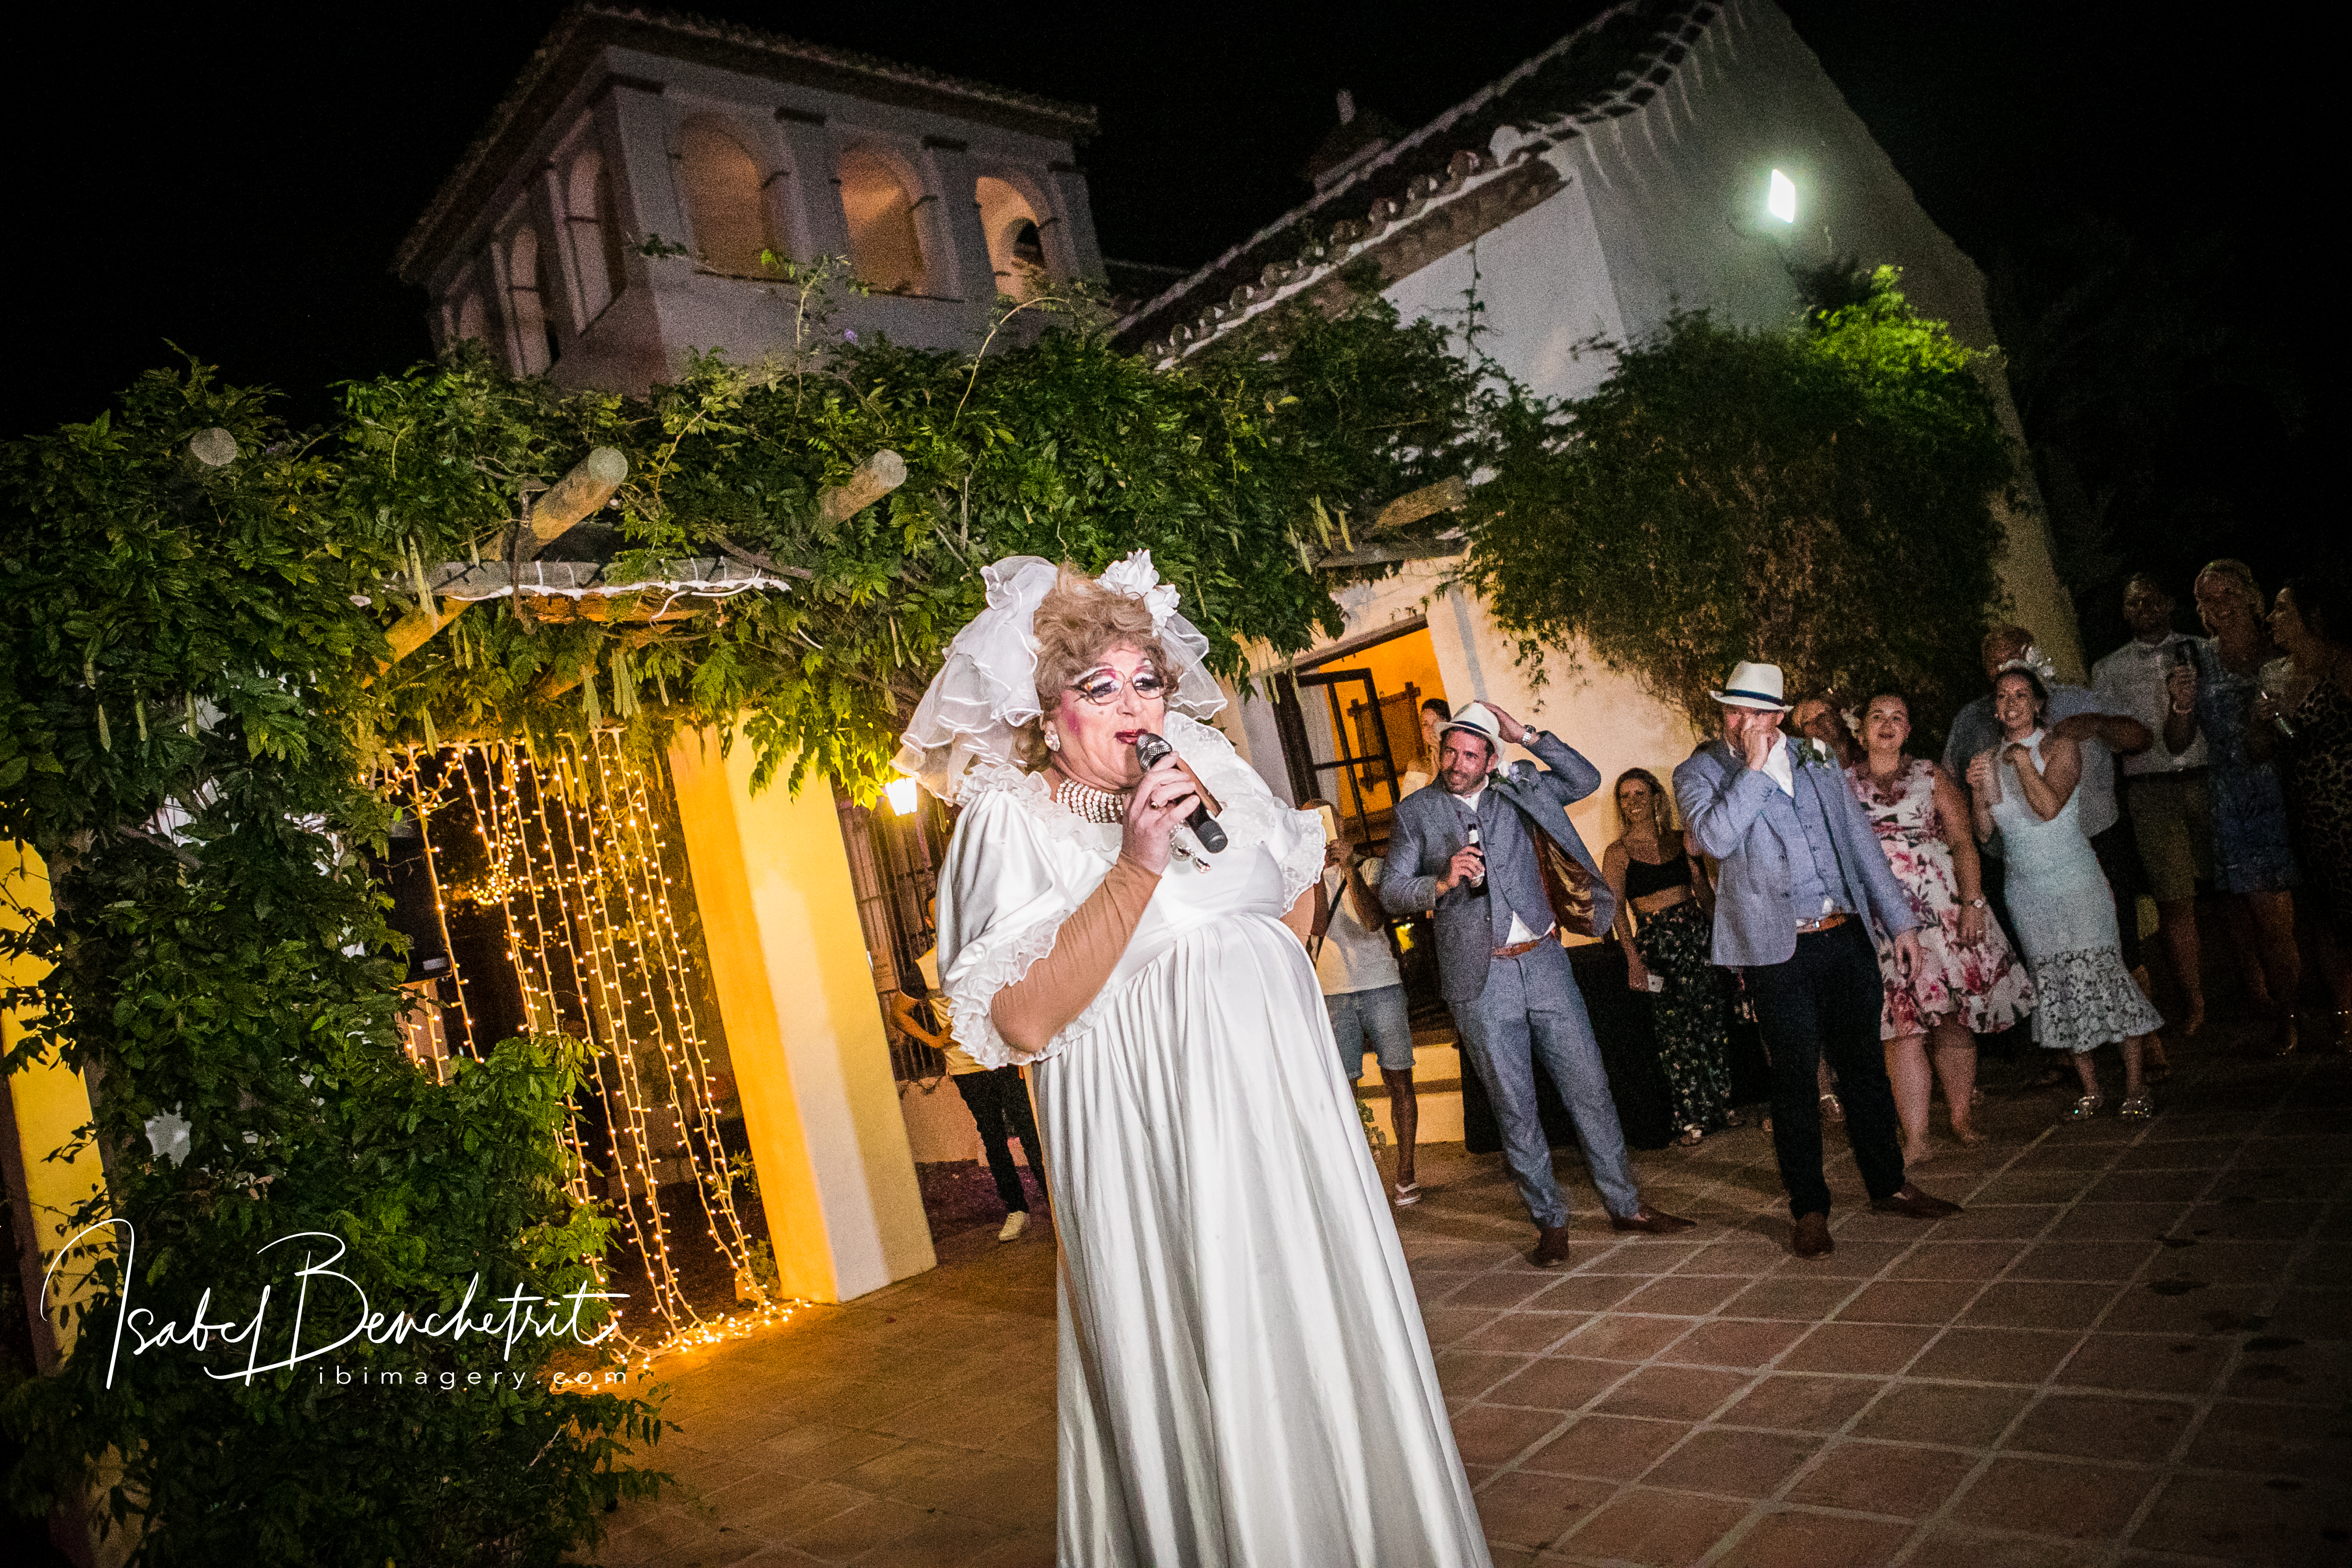 An amazing drag artist performance that wowed the guests!